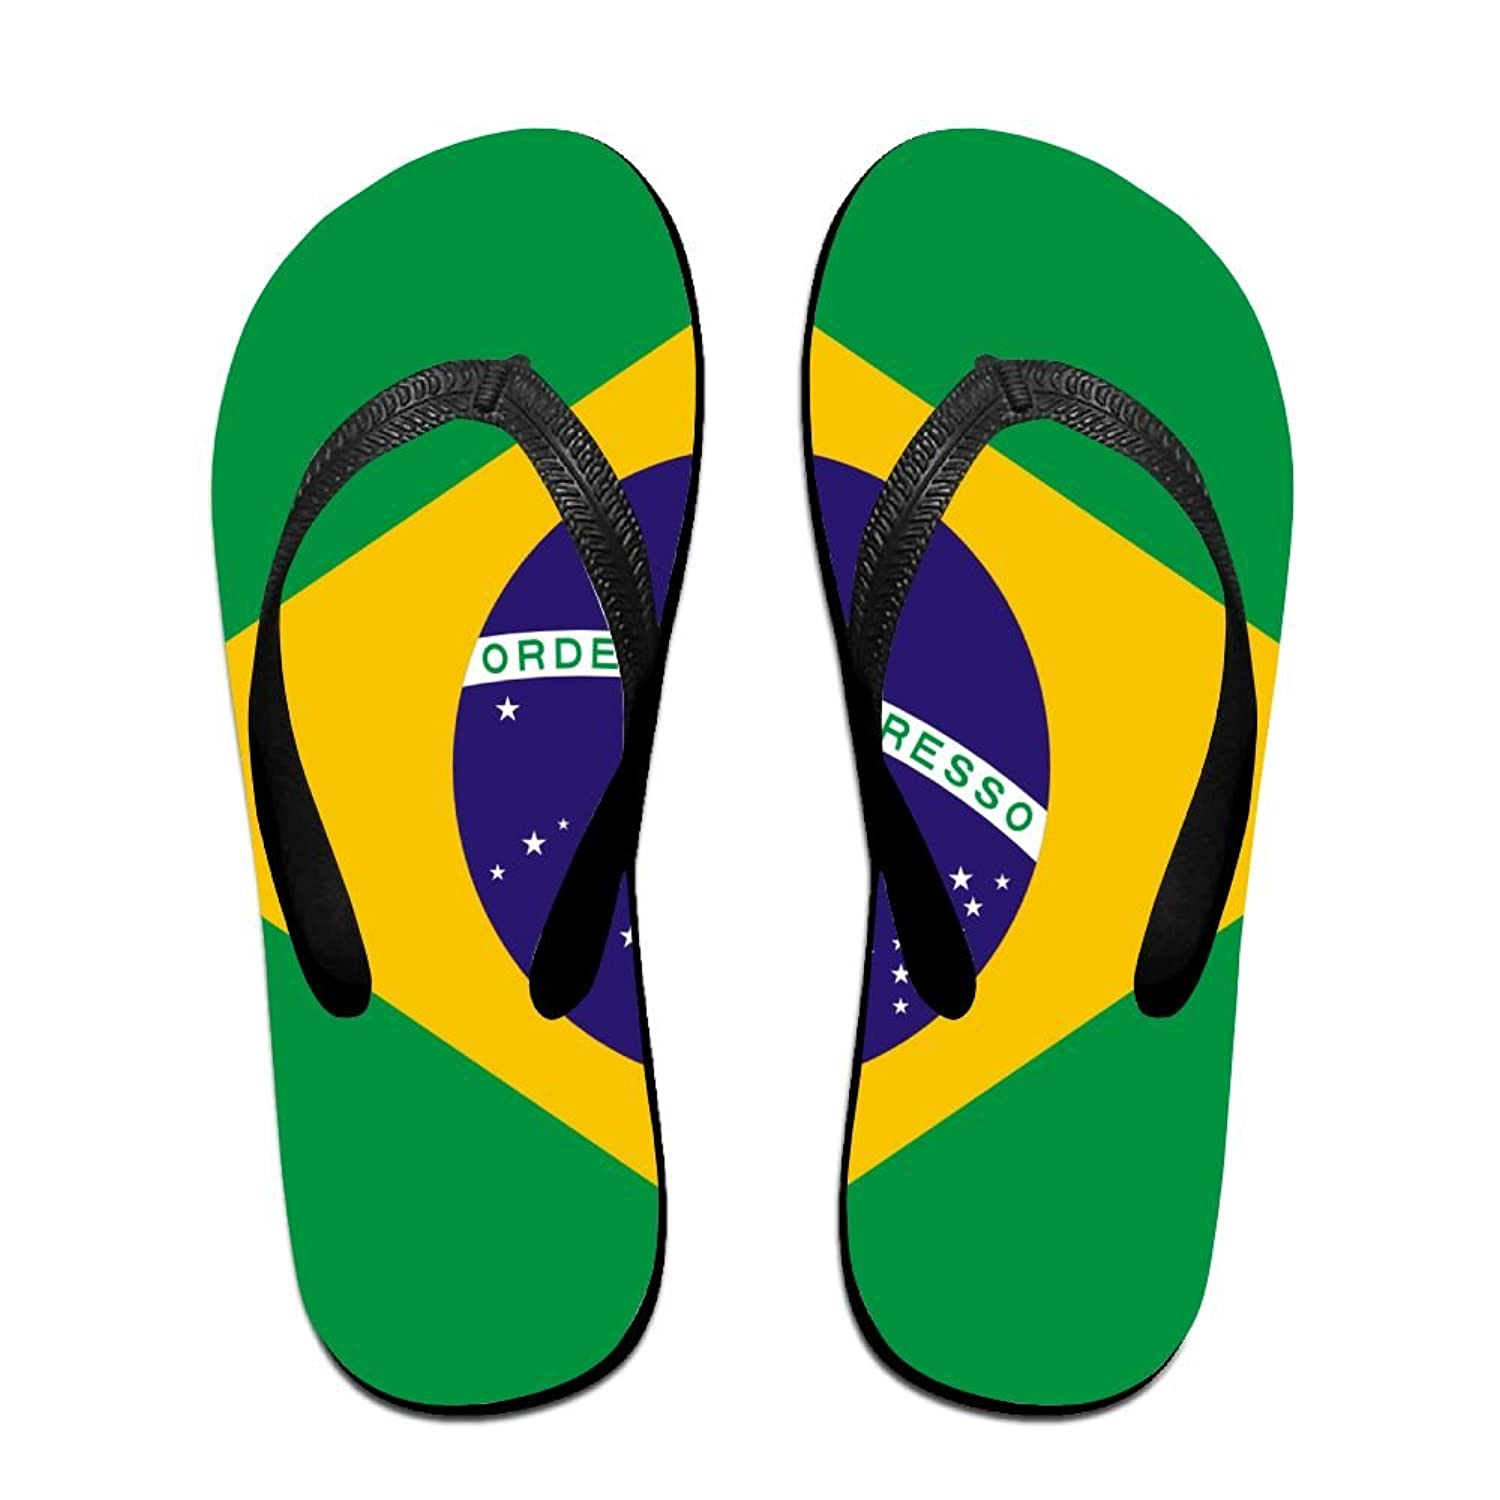 Flag Of Brazil Comfortable Flip Flops For Children Adults Men And Women Beach Sandals Pool Party Slippers